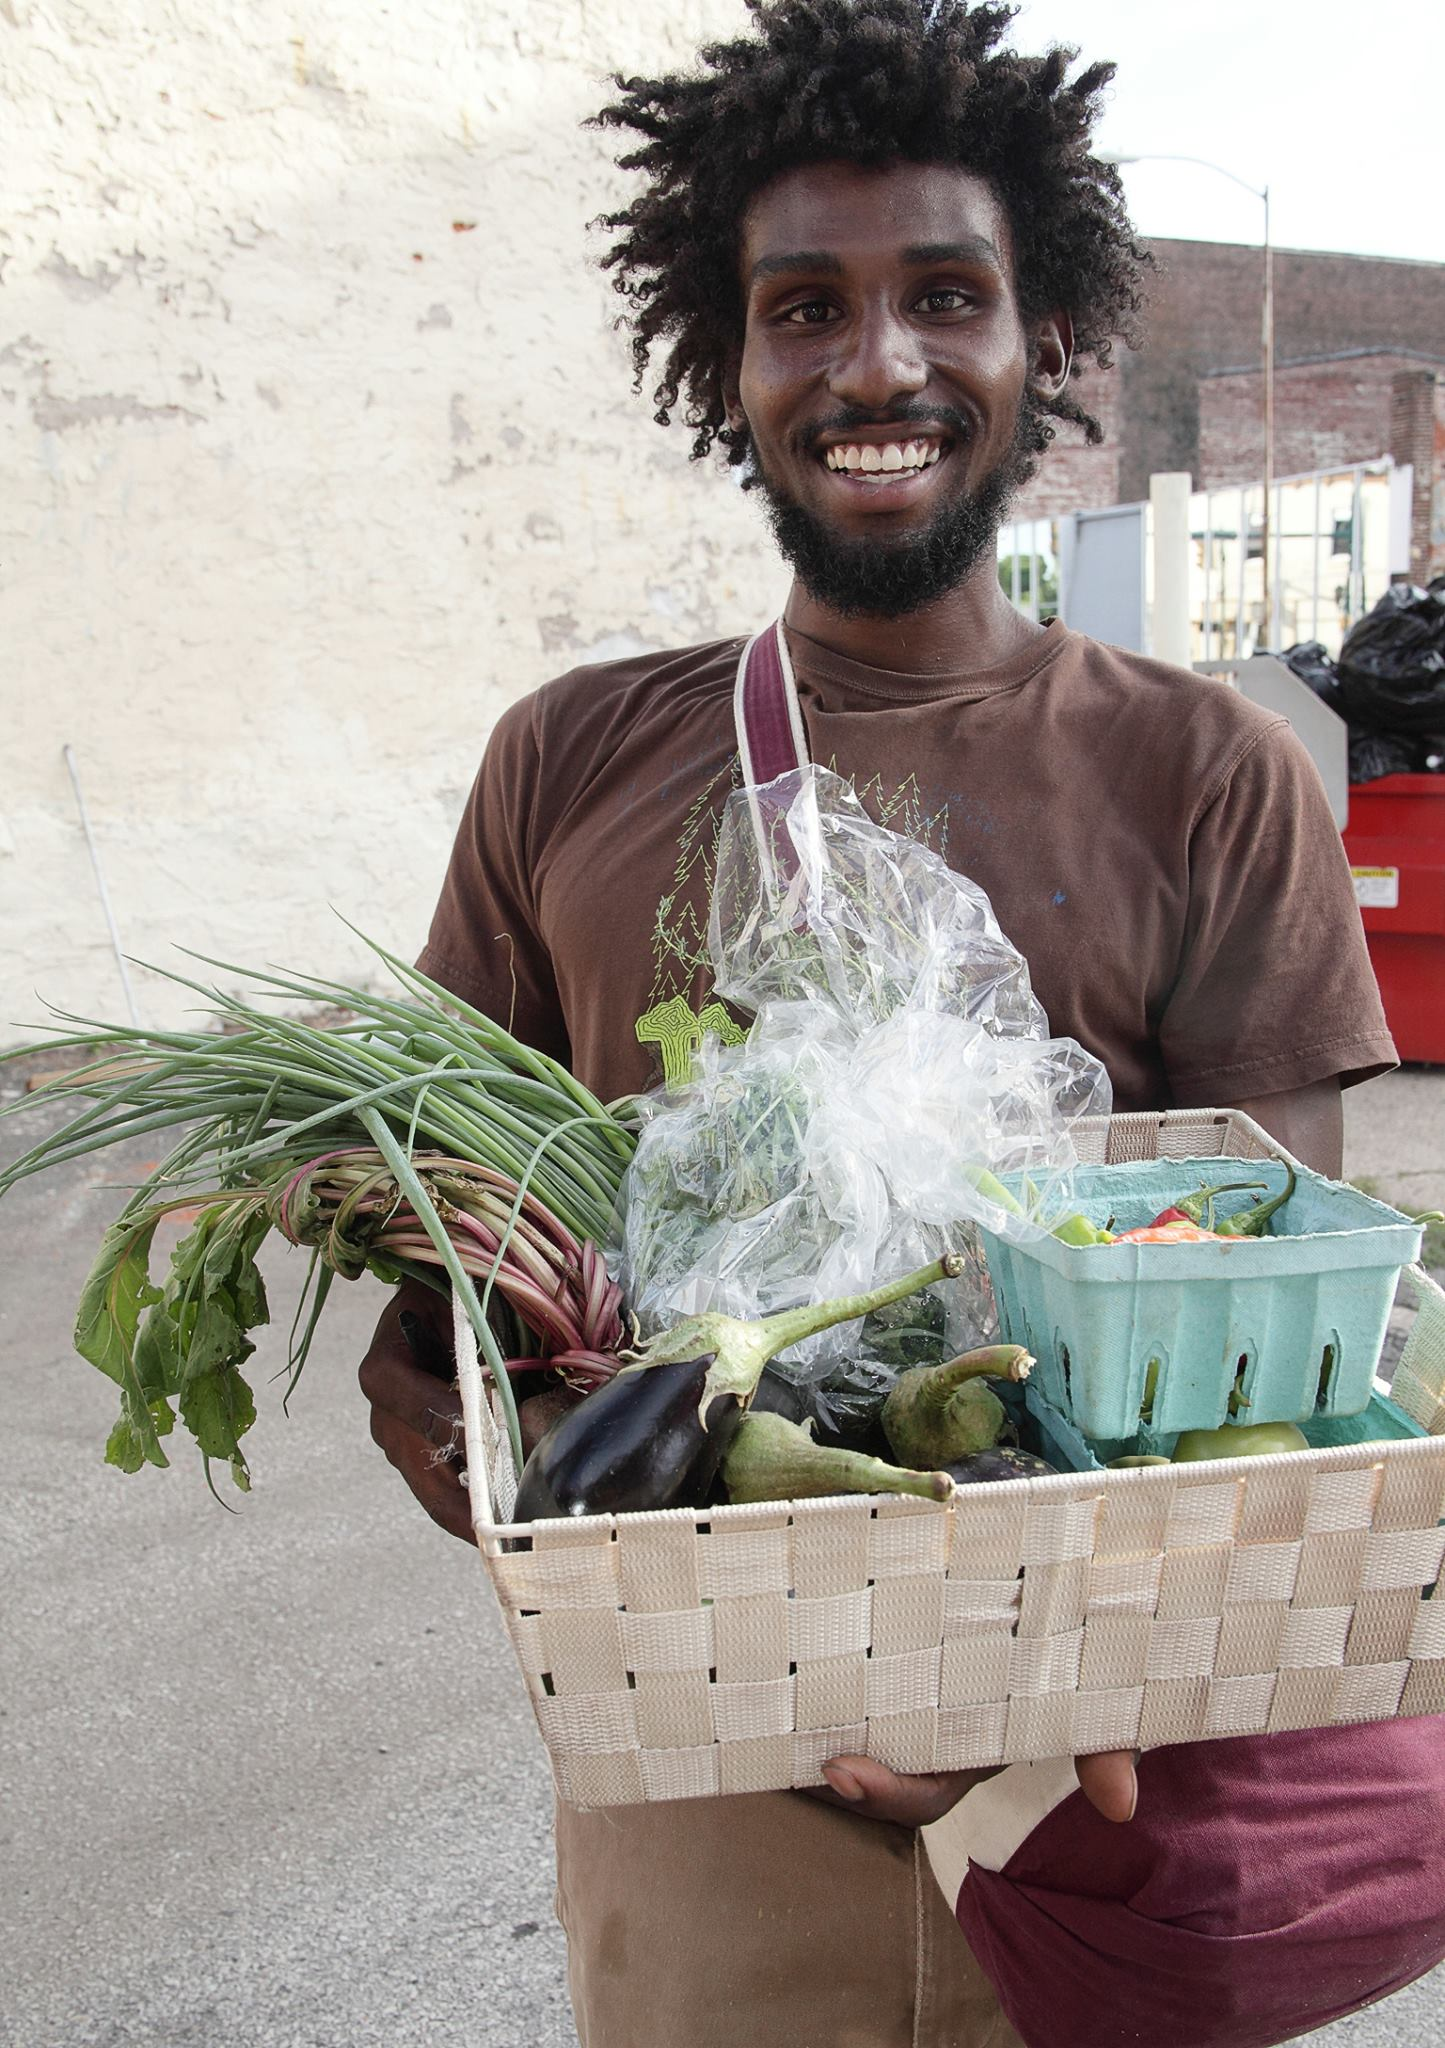 Agroecology at OneArt - Terrence Topping-Brown led an agroecology course at OneArt Community Center